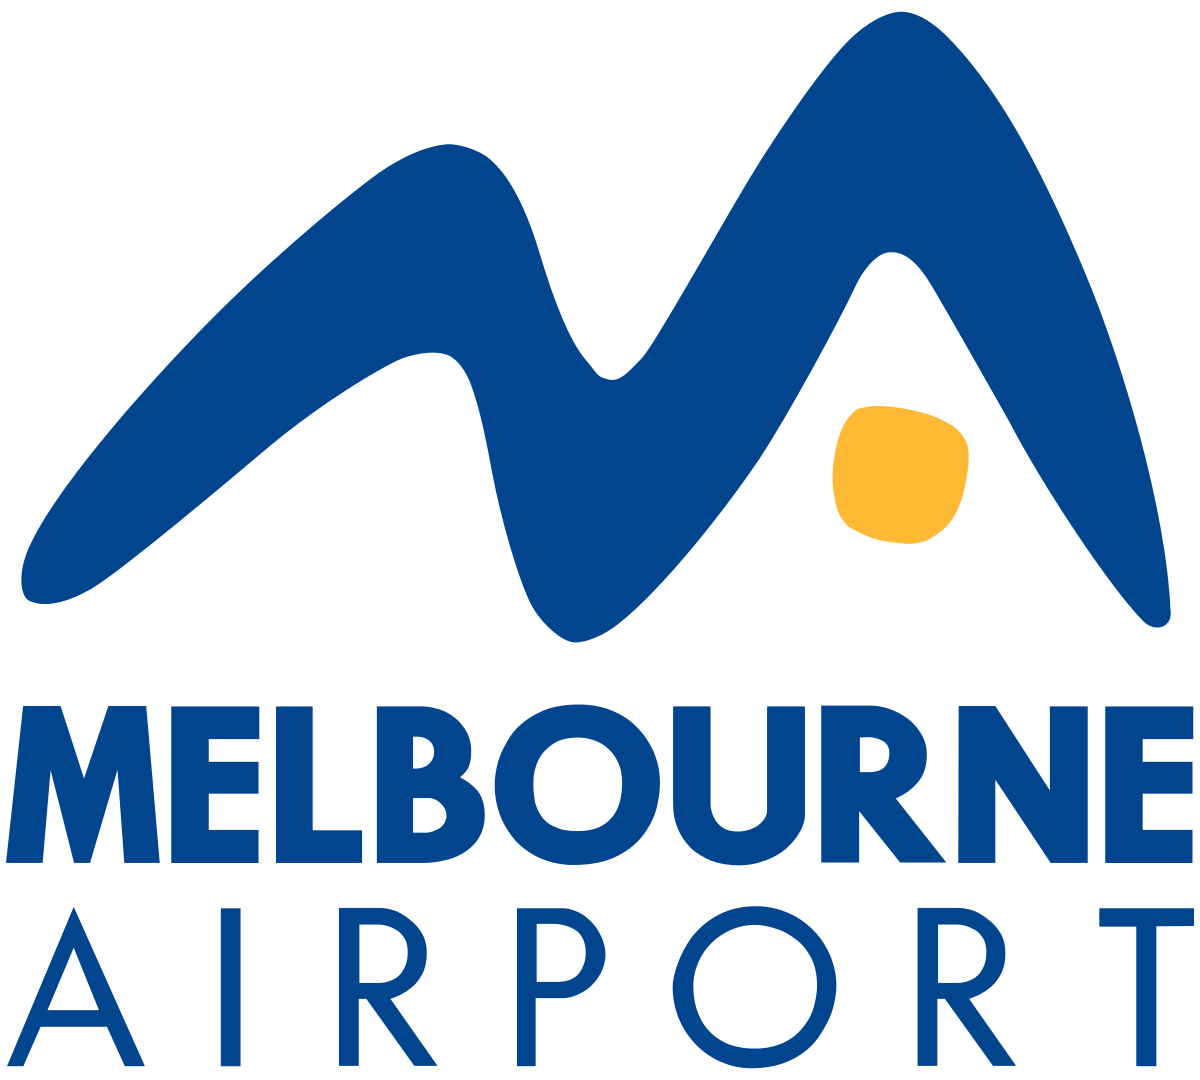 Flying clipart airport terminal. Melbourne wikipedia